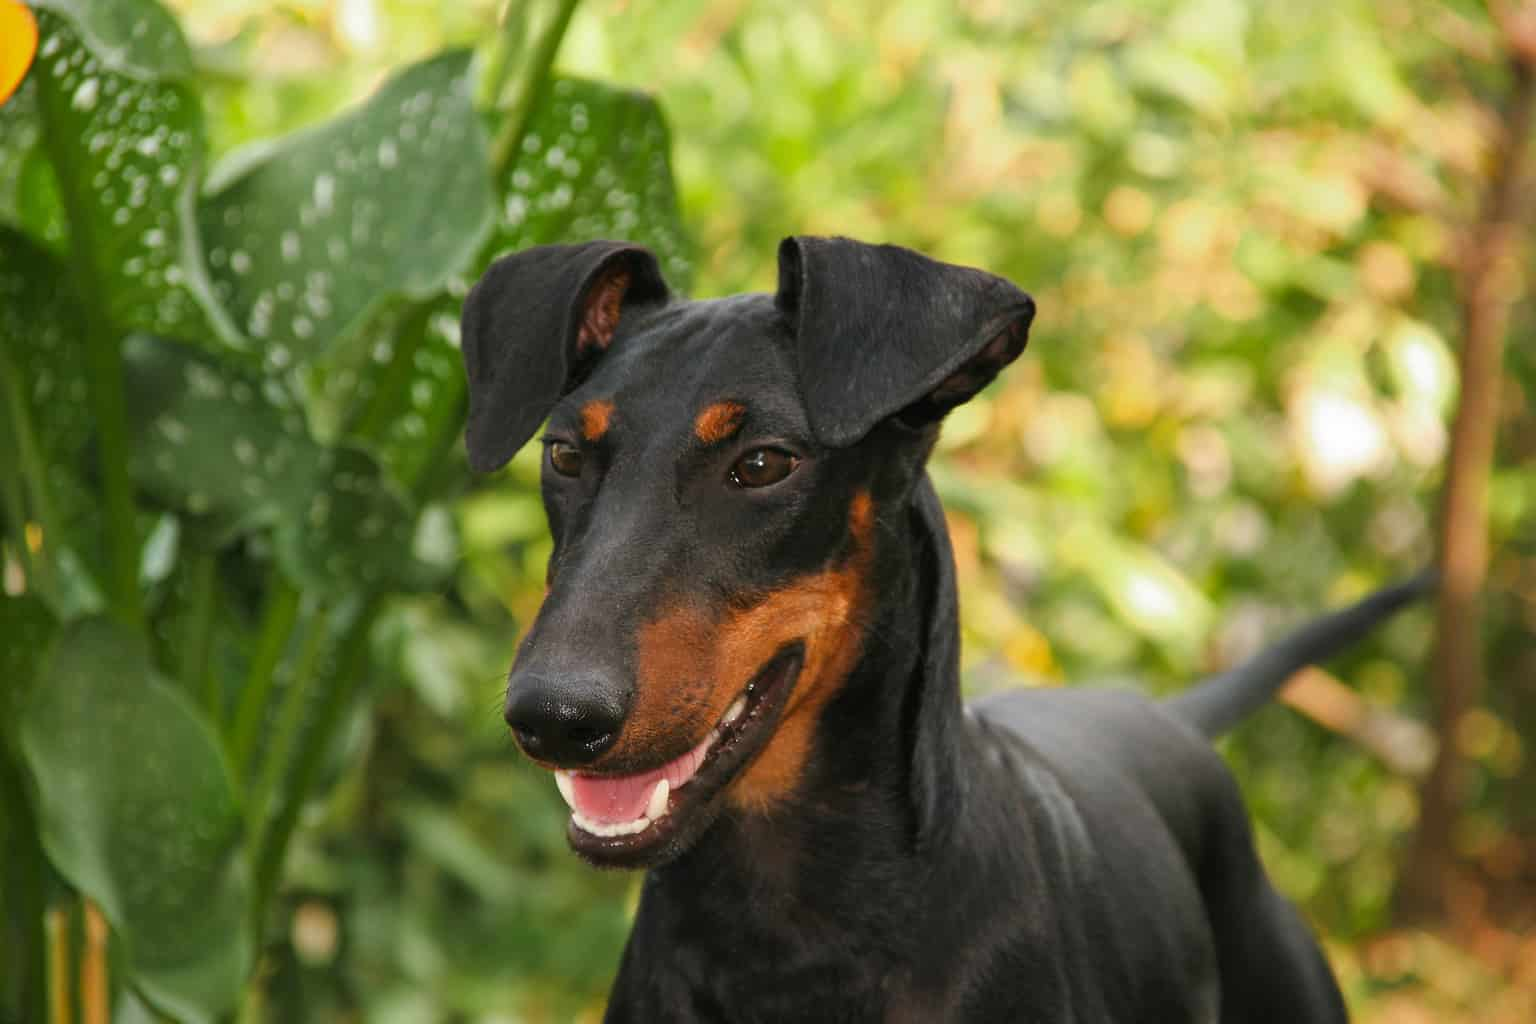 Portrait of a Manchester Terrier dog (Canis lupus familiaris).